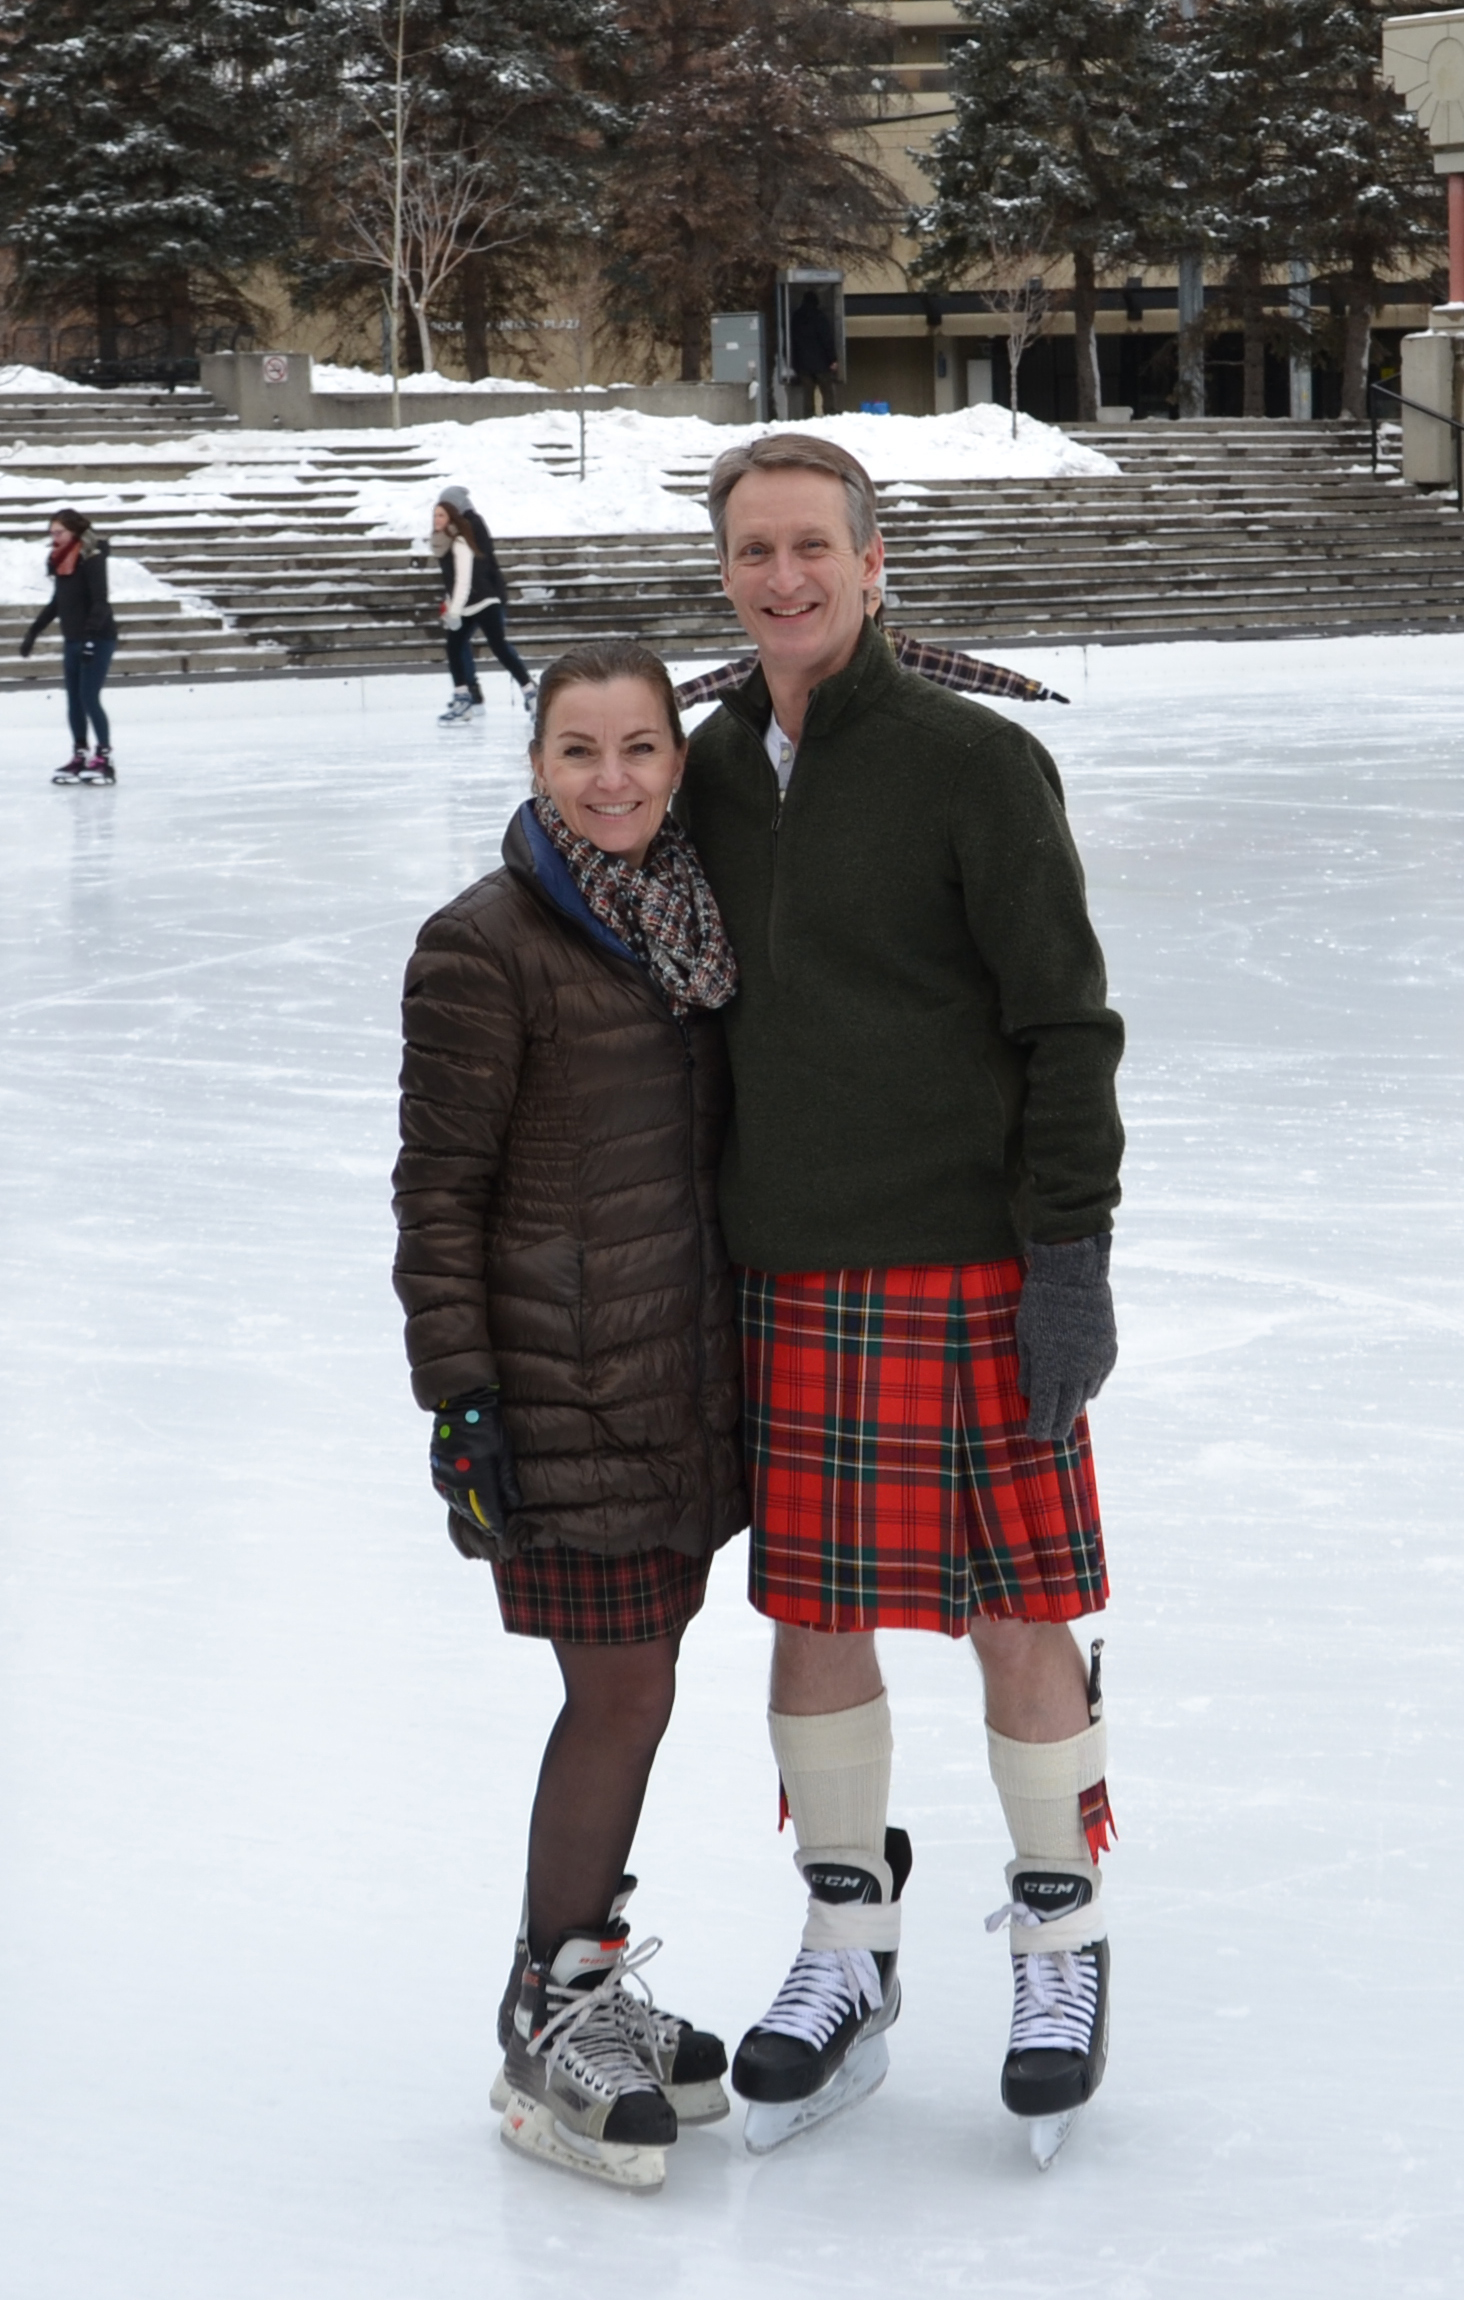 Celebrating Sir John A on Kilt Skate Day